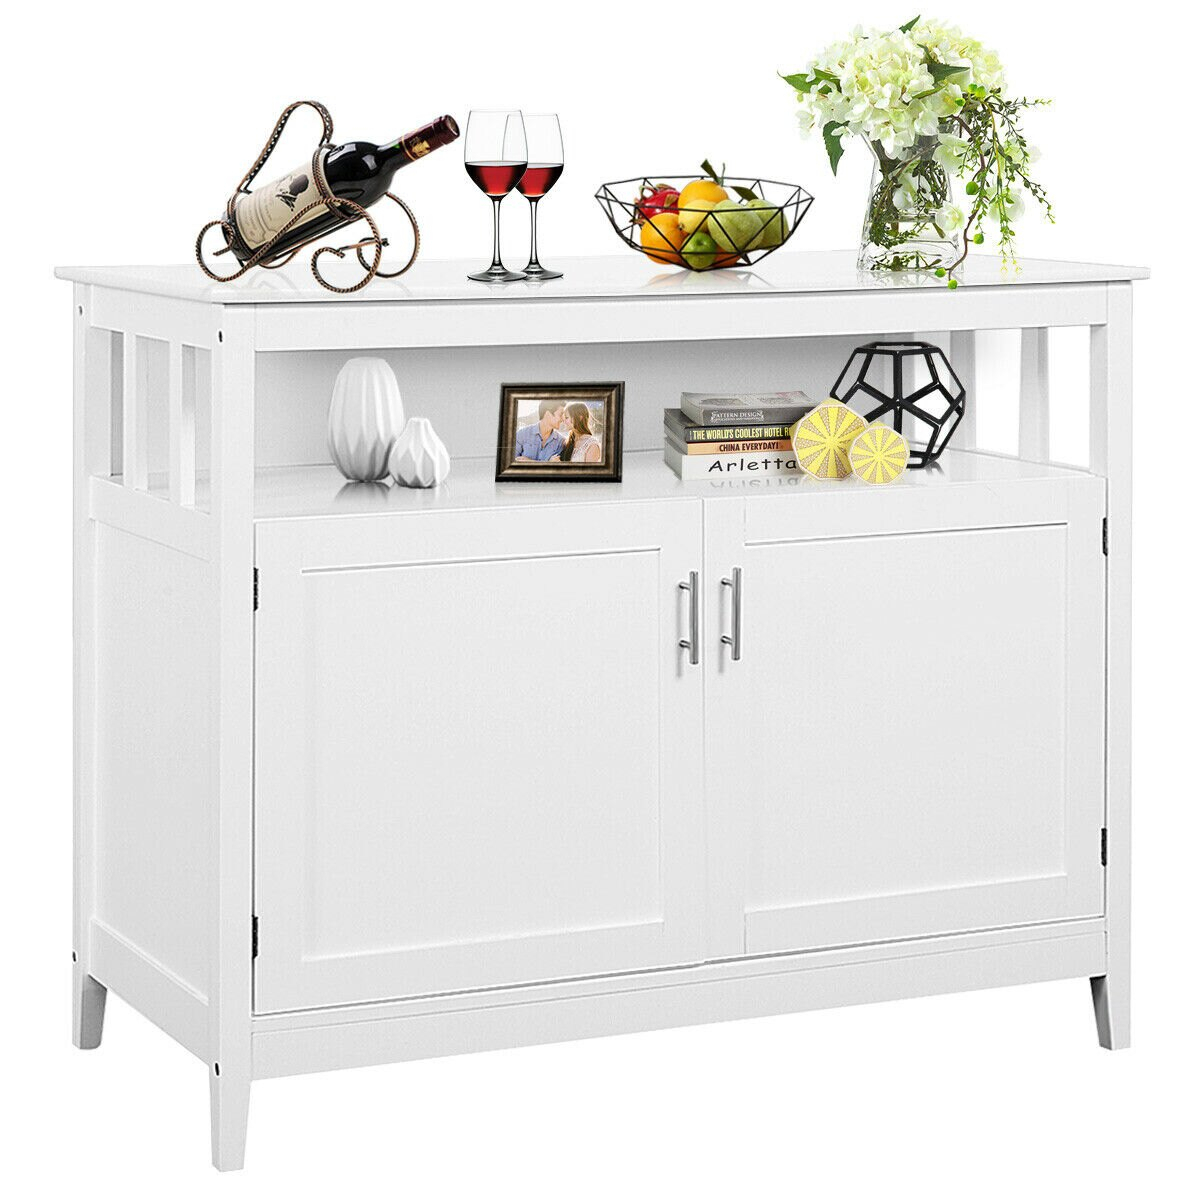 Costway: Costway Modern Kitchen Storage Cabinet Buffet Server Table Sideboard Dining Wood White | Rakuten Throughout Contemporary Style Wooden Buffets With Two Side Door Storage Cabinets (View 9 of 30)